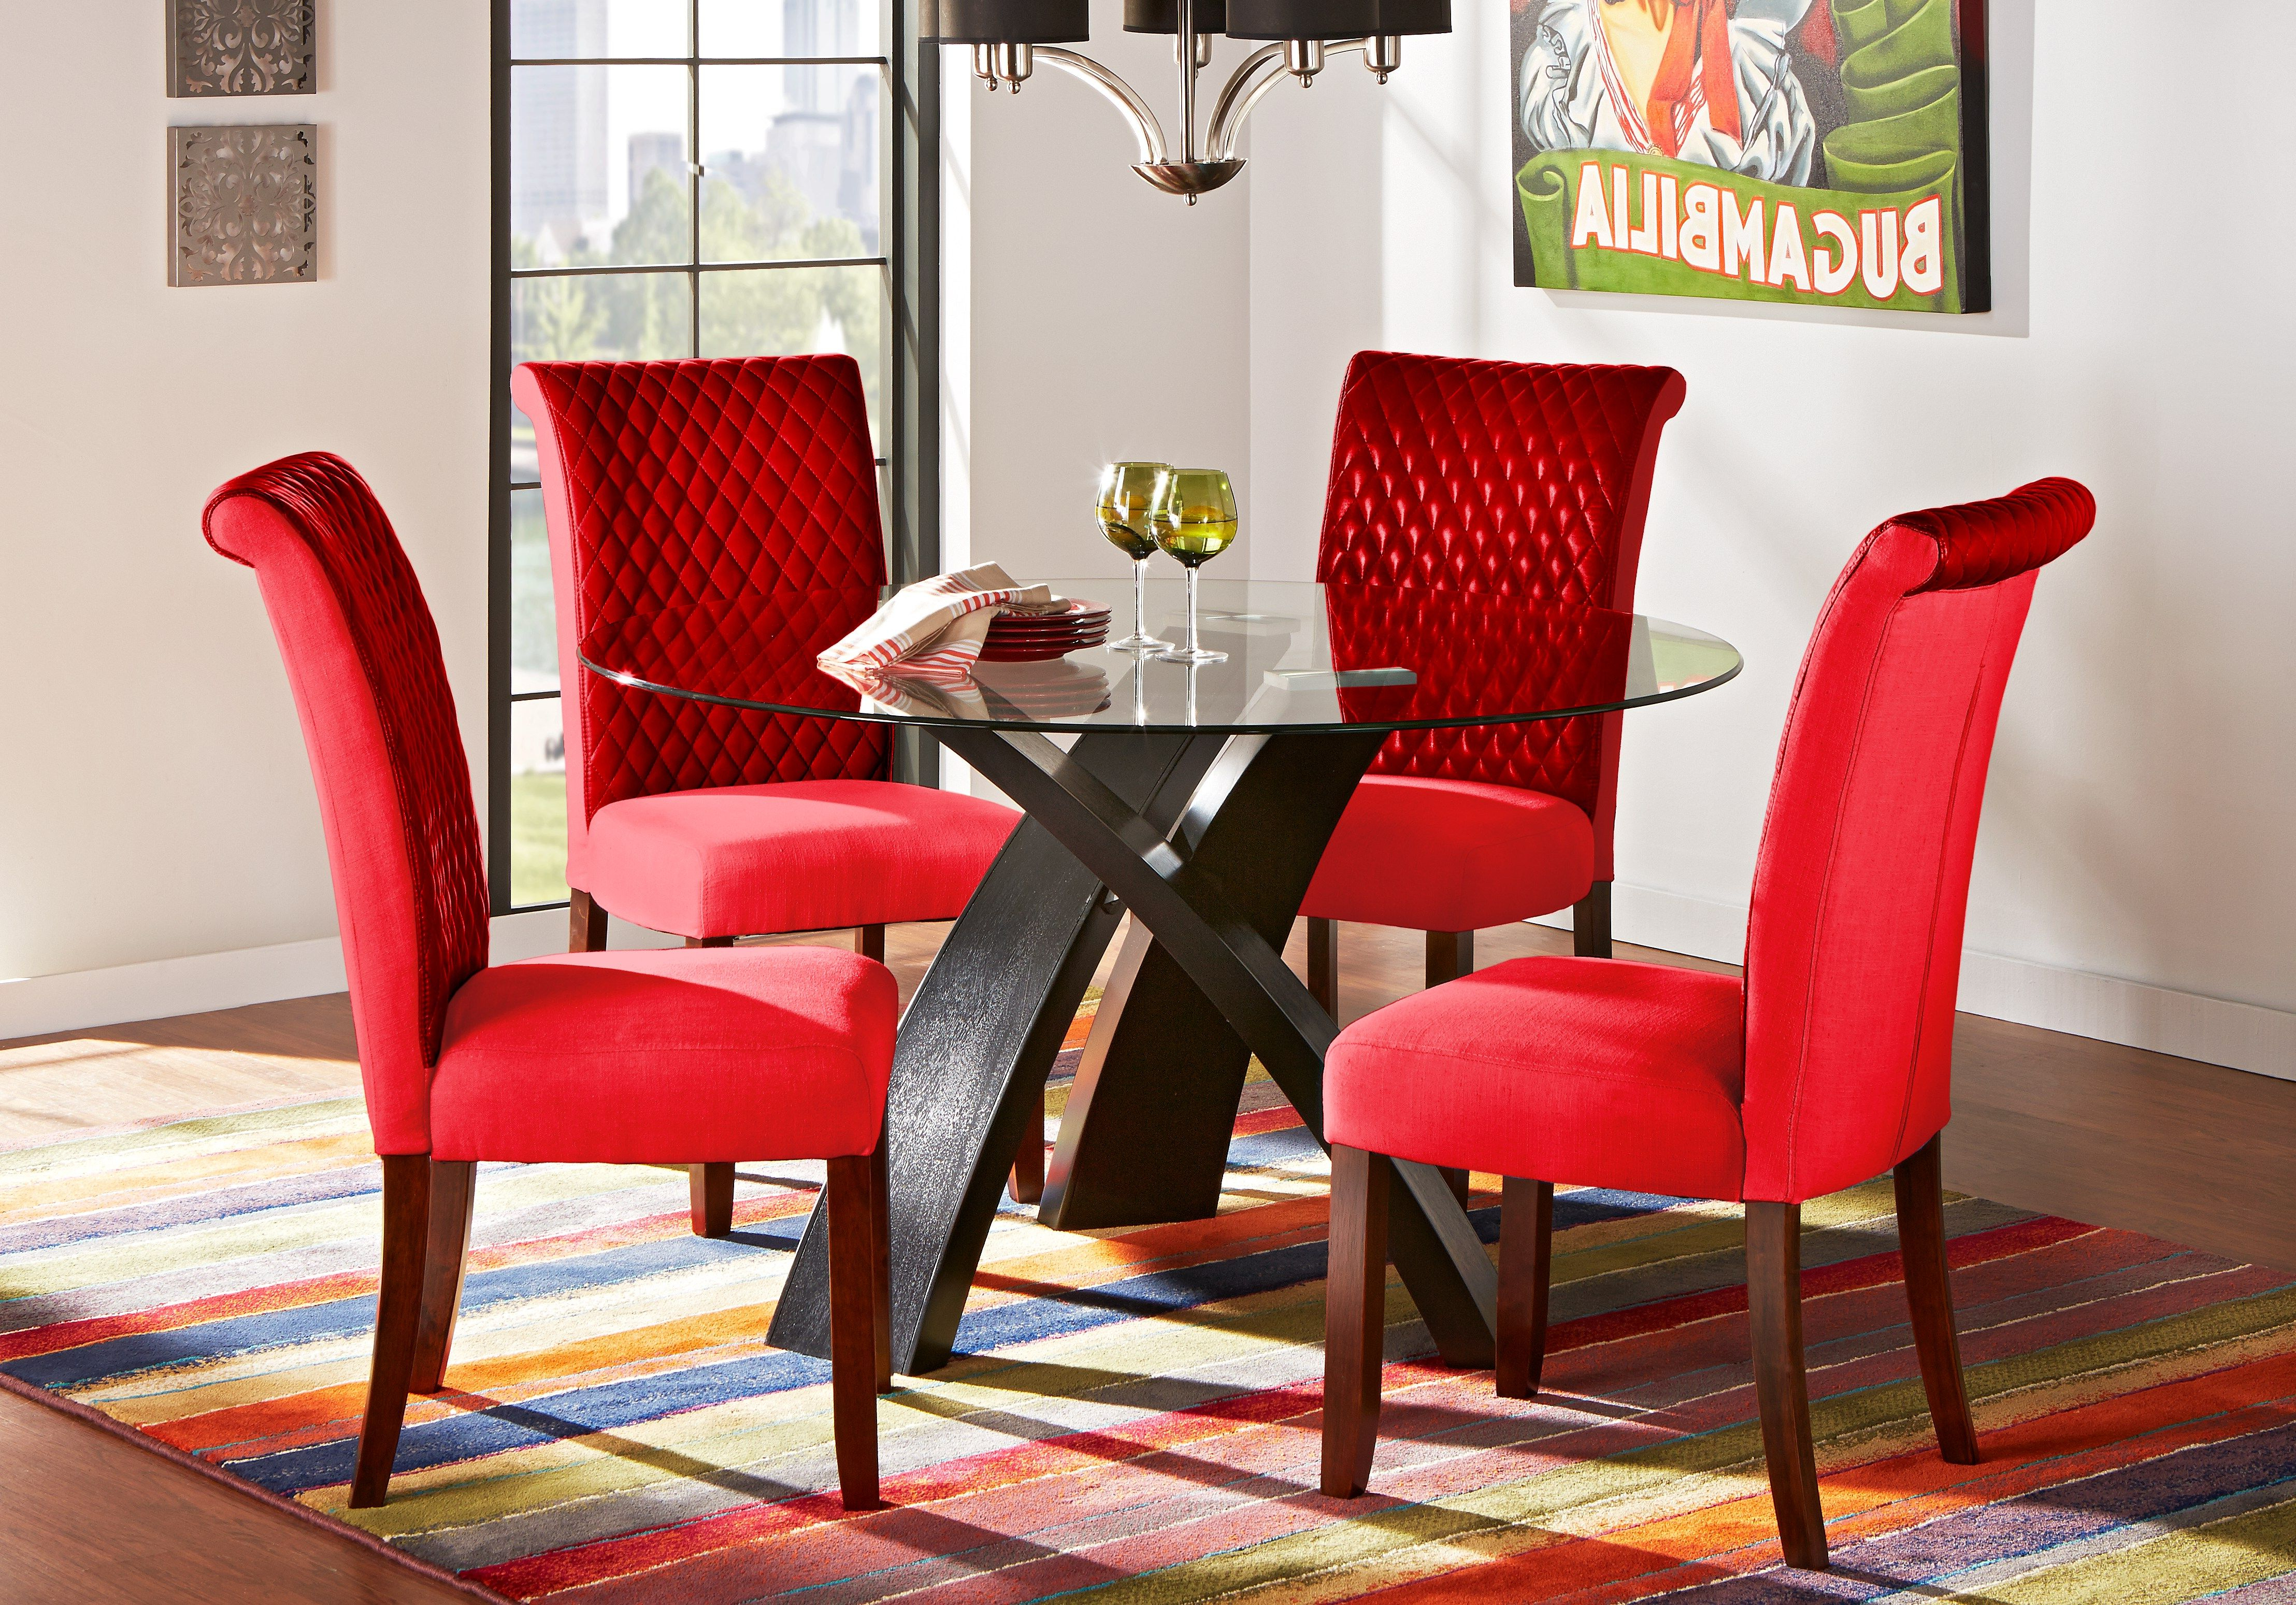 Widely Used Del Mar Ebony 5 Pc Round Dining Set With Red Chairs In 2019 With Delmar 5 Piece Dining Sets (View 25 of 25)